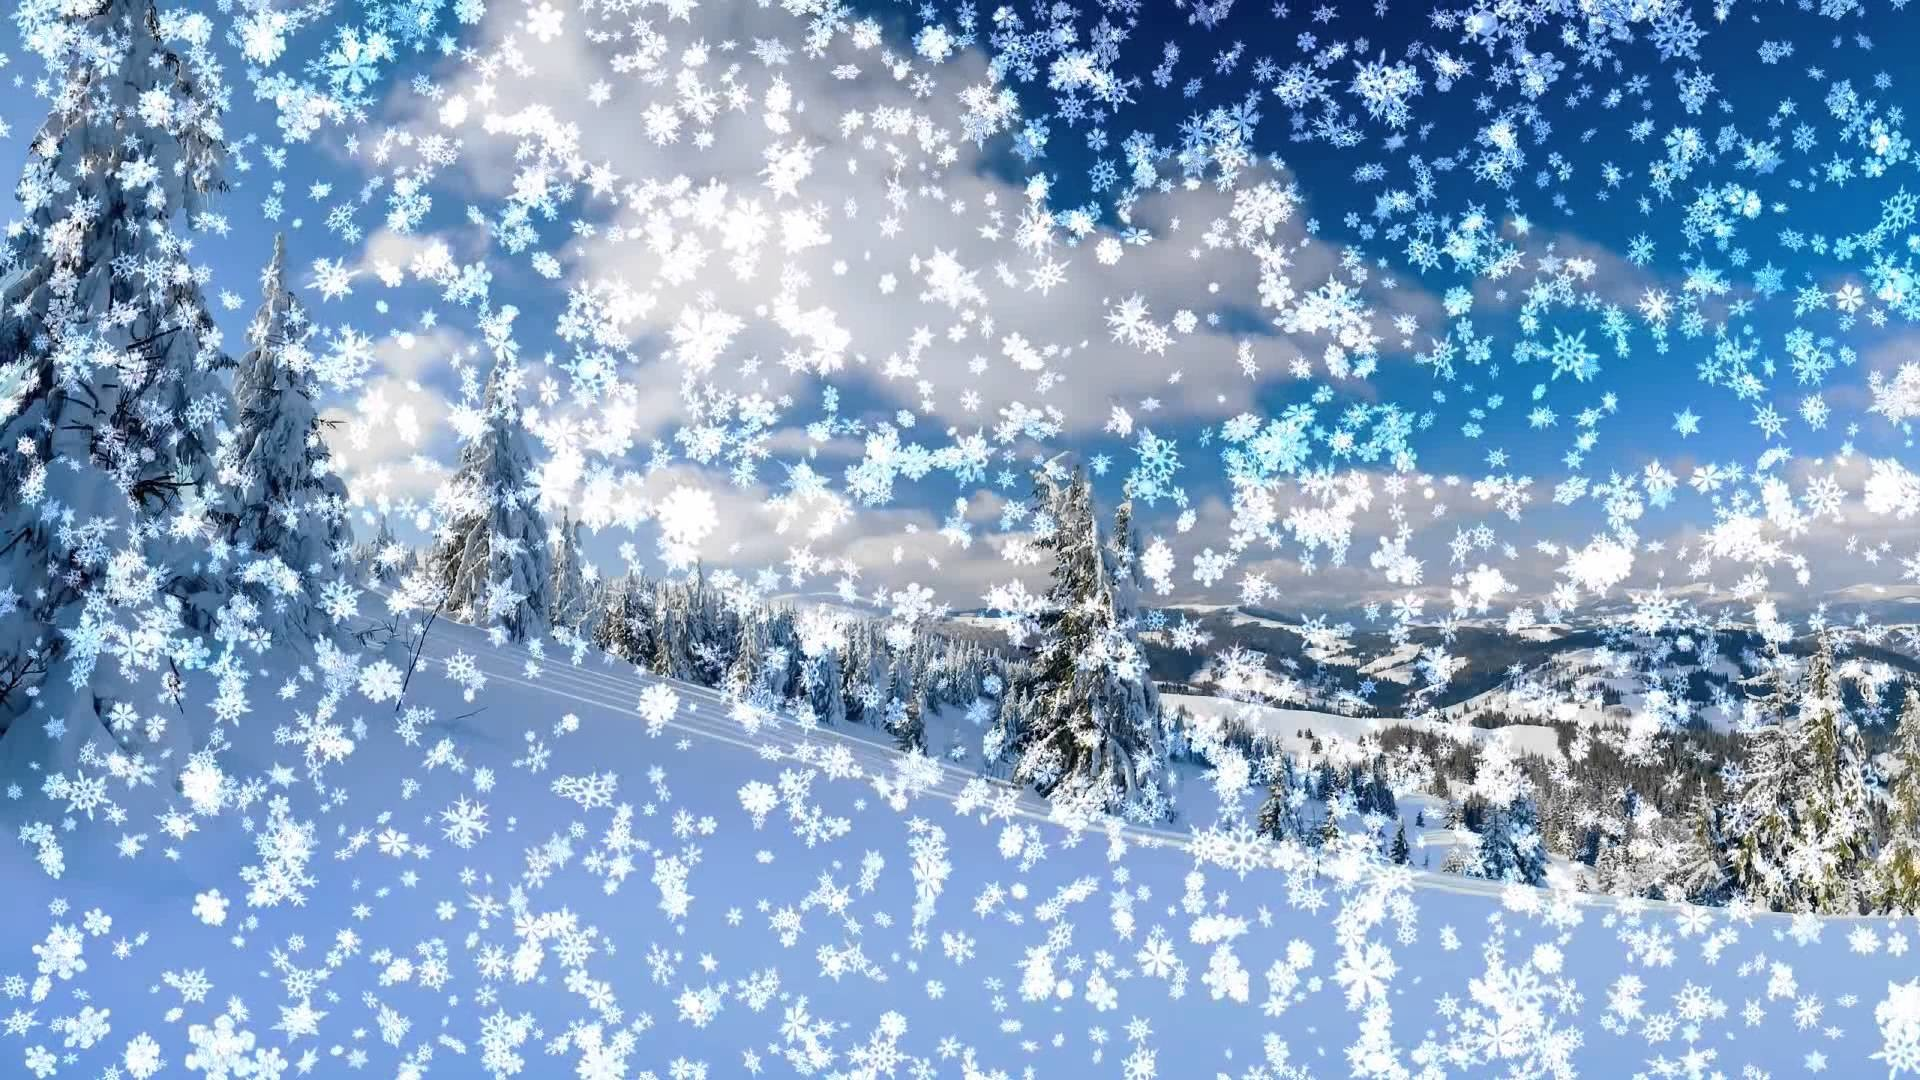 Snow Falling Live Wallpaper Download Freeze Screensavers And Wallpaper 65 Images